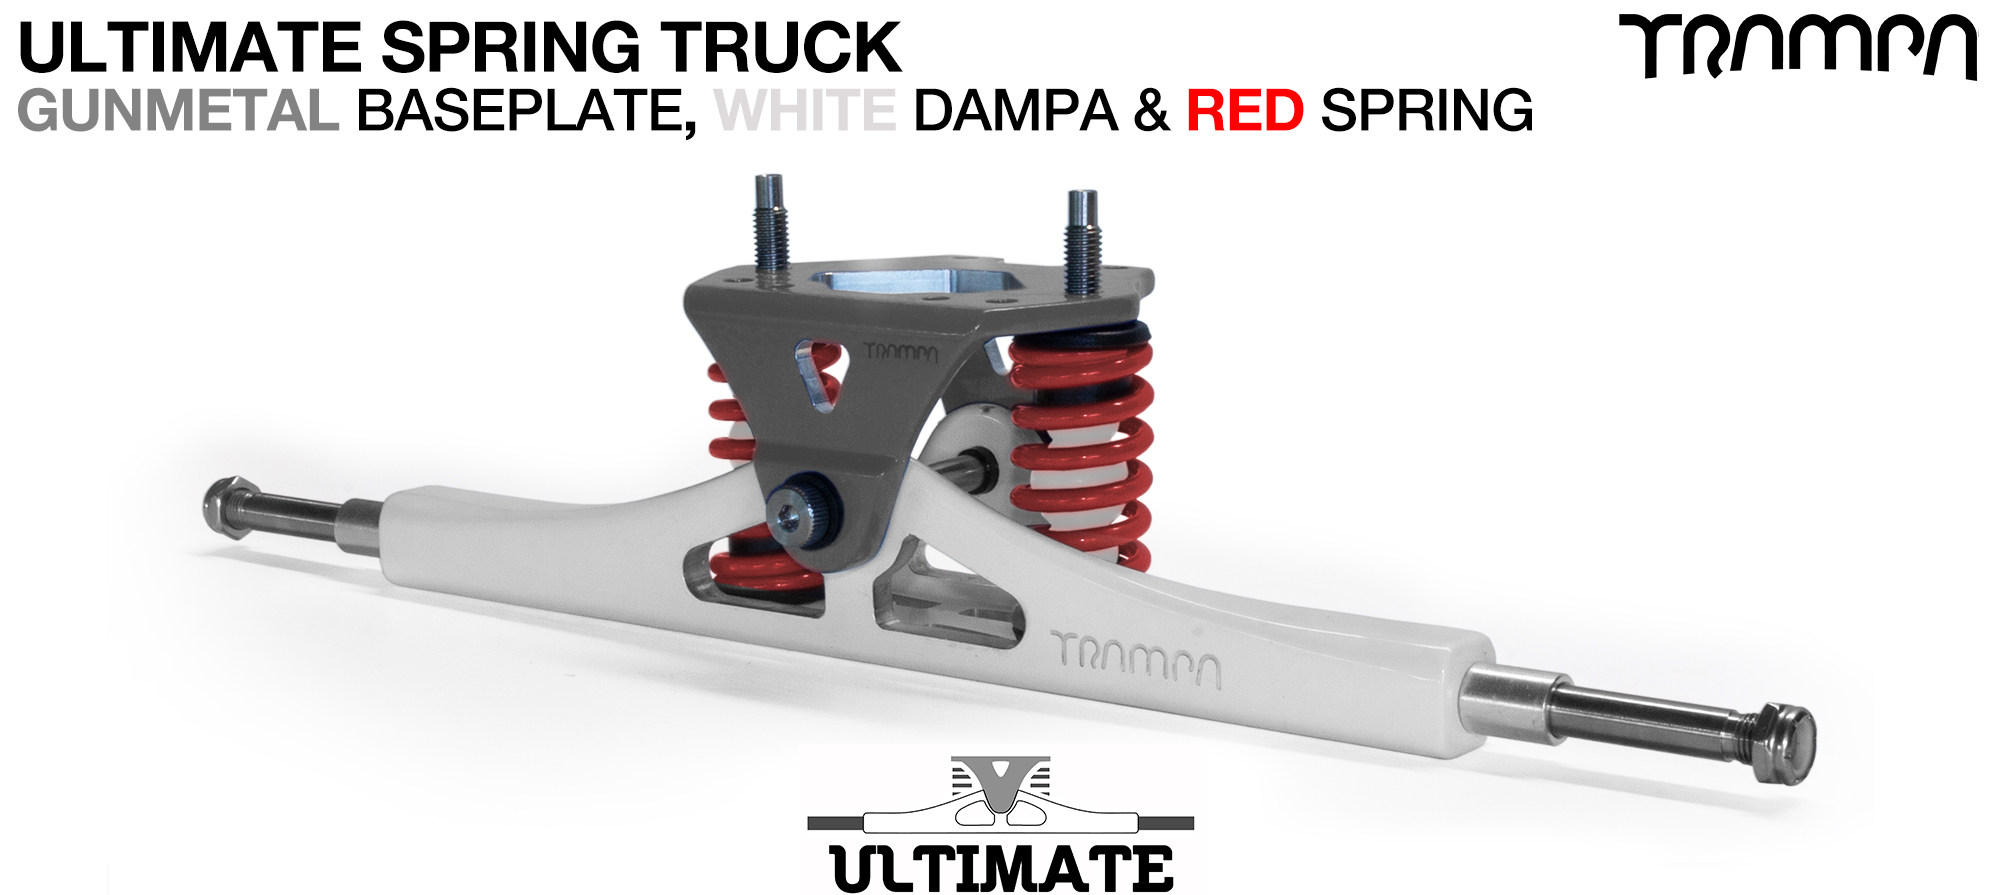 ULTIMATE ATB TRUCK - WHITE ATB Hanger with TITANIUM Axles & Kingpin & GUNMETAL Baseplate